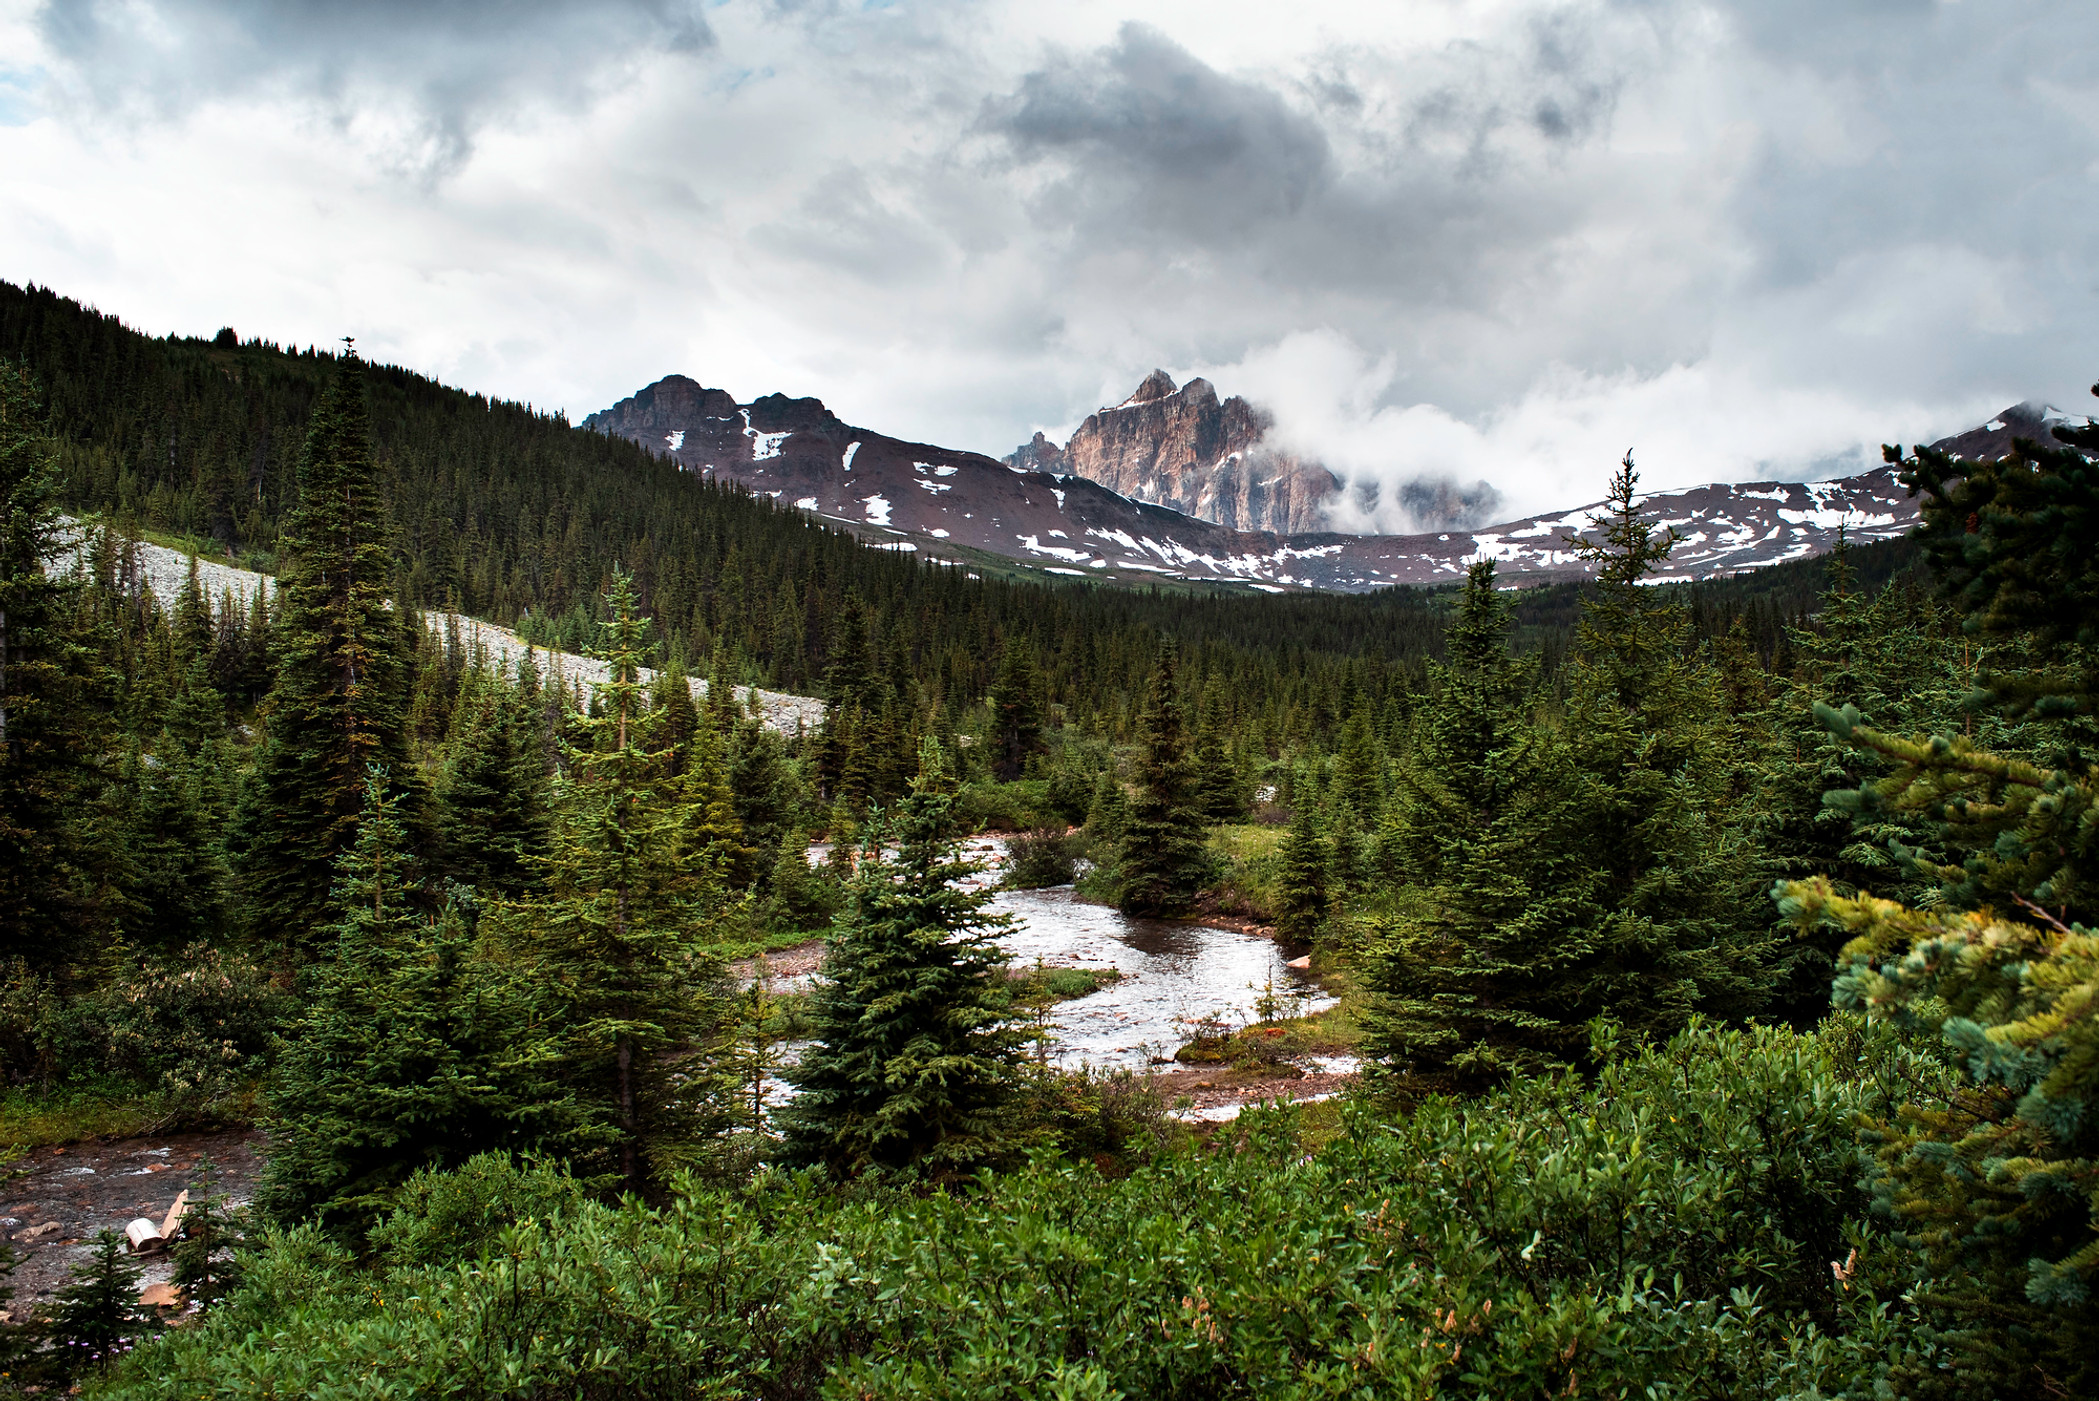 Mount Clitheroe in Tonquin Valley